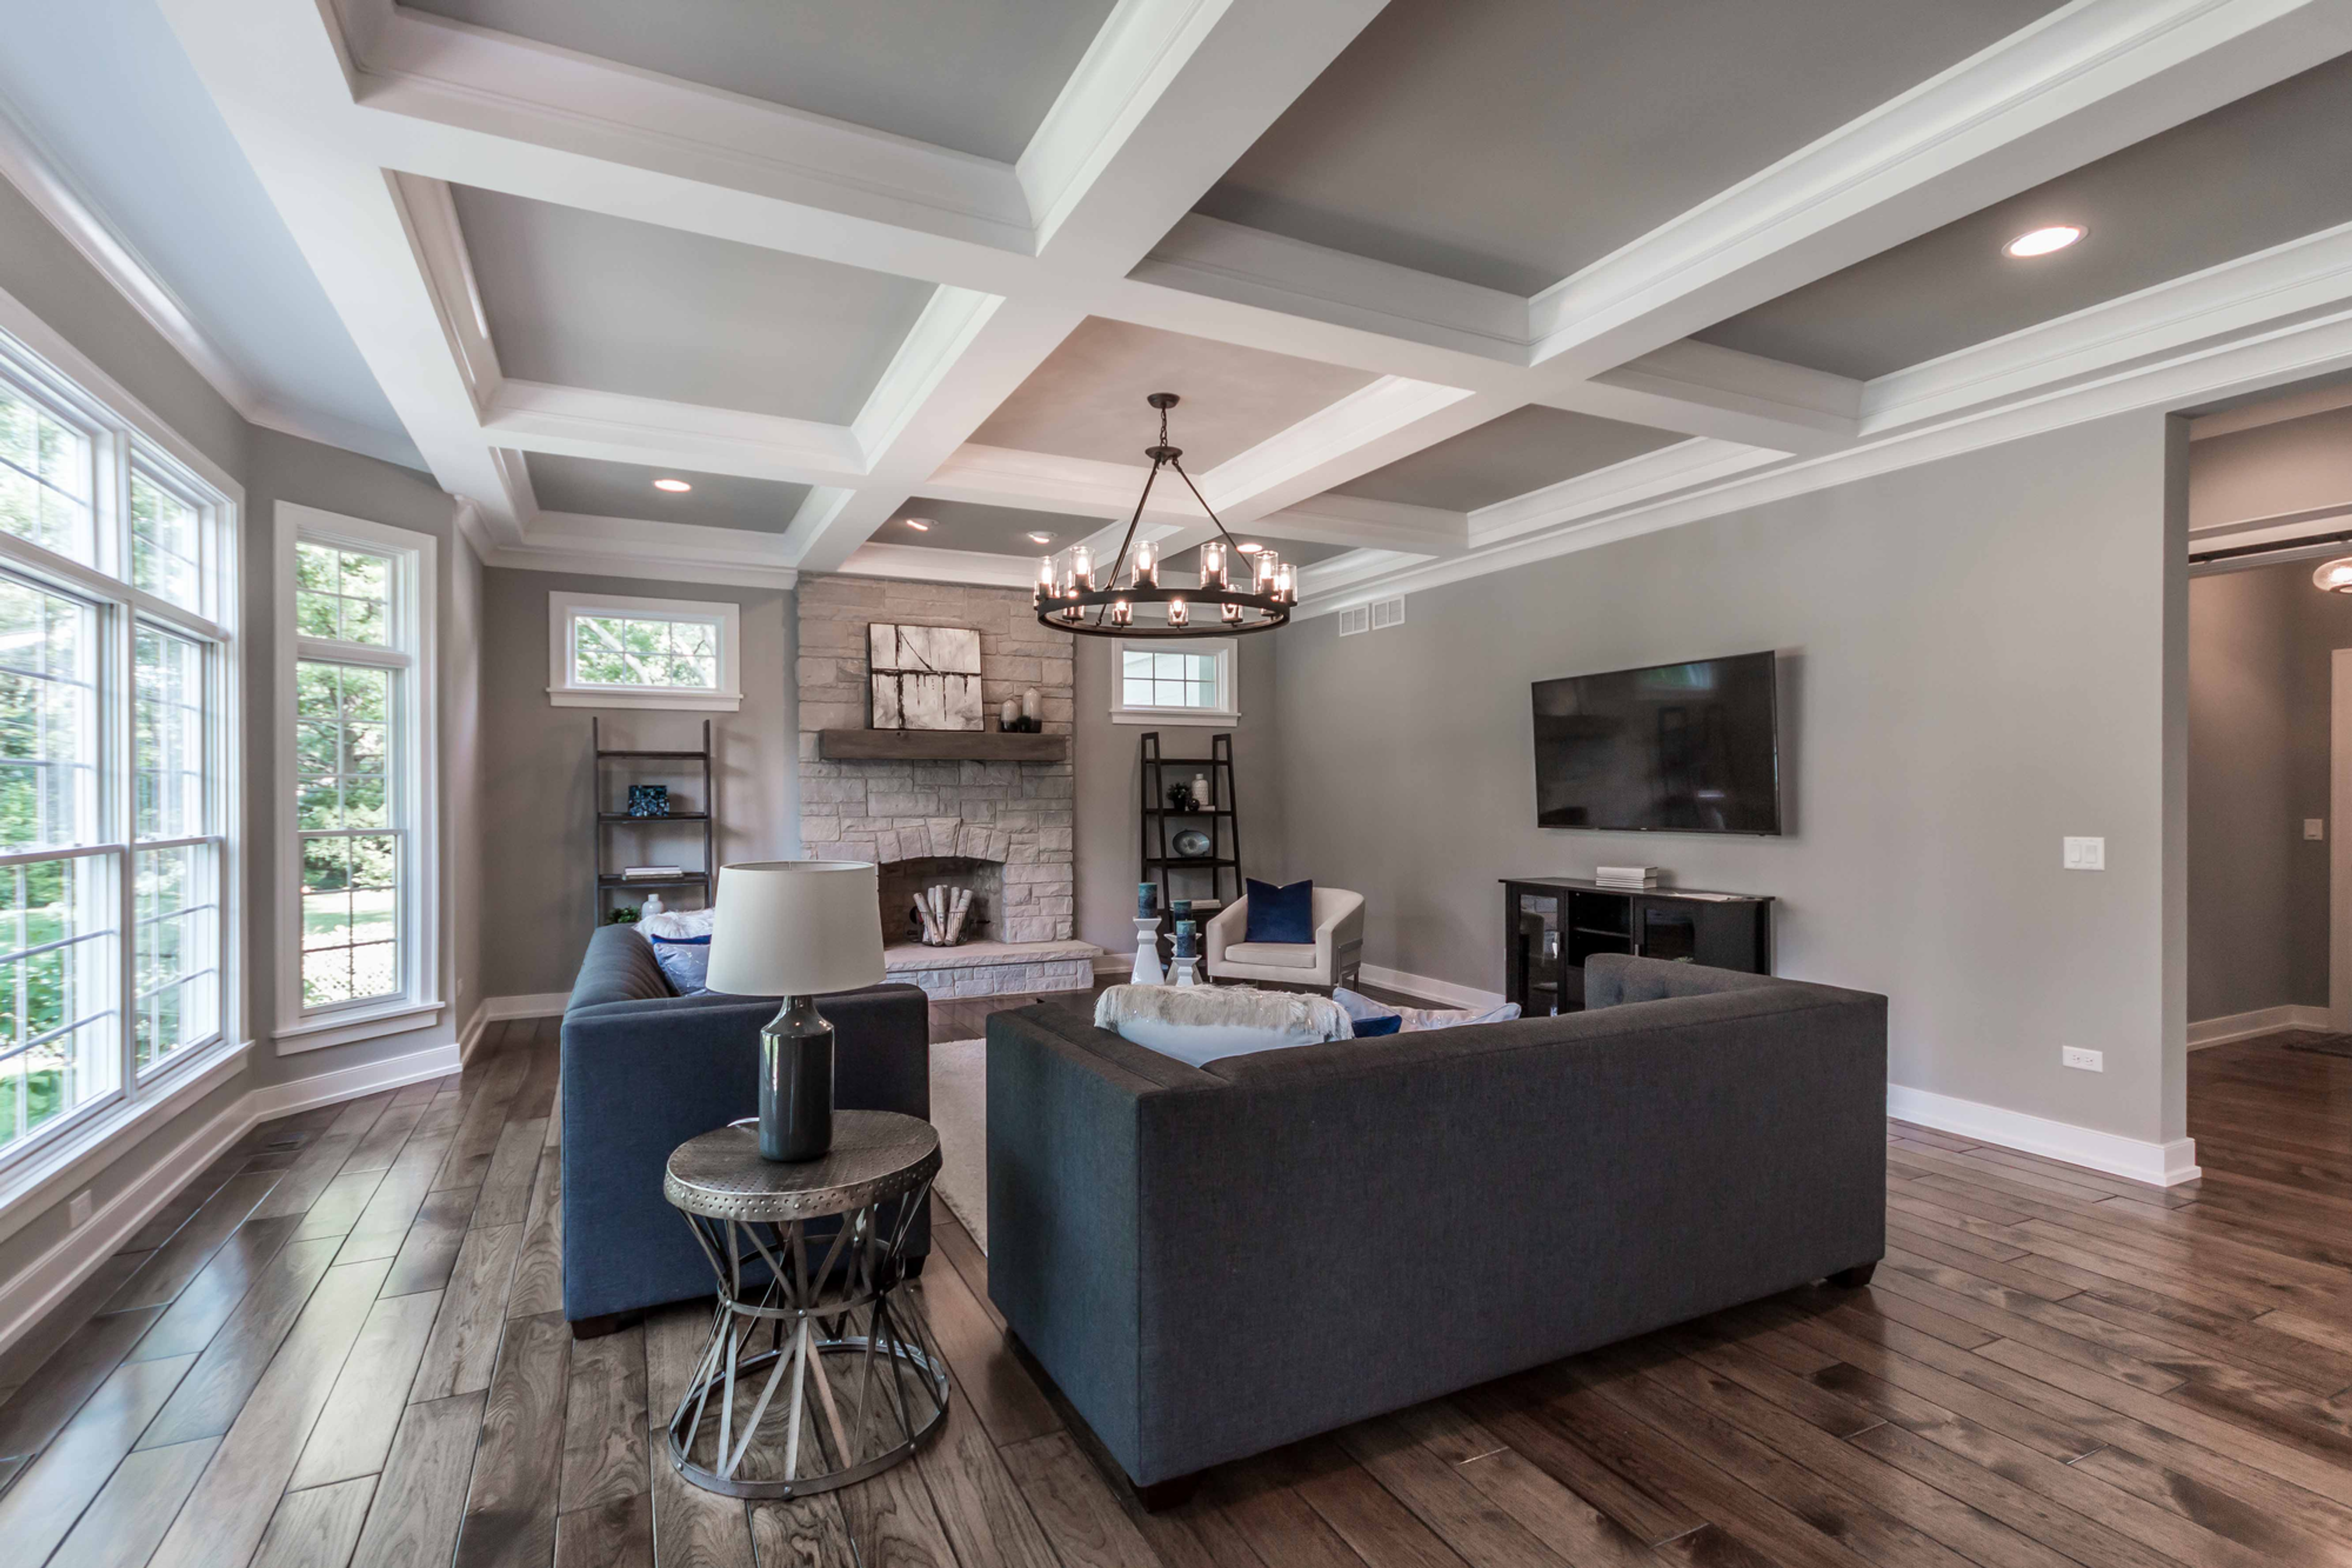 Top Ten Living Room Designs From 2019 Home Tours In 2020 Living Room Designs Home Family Room Design